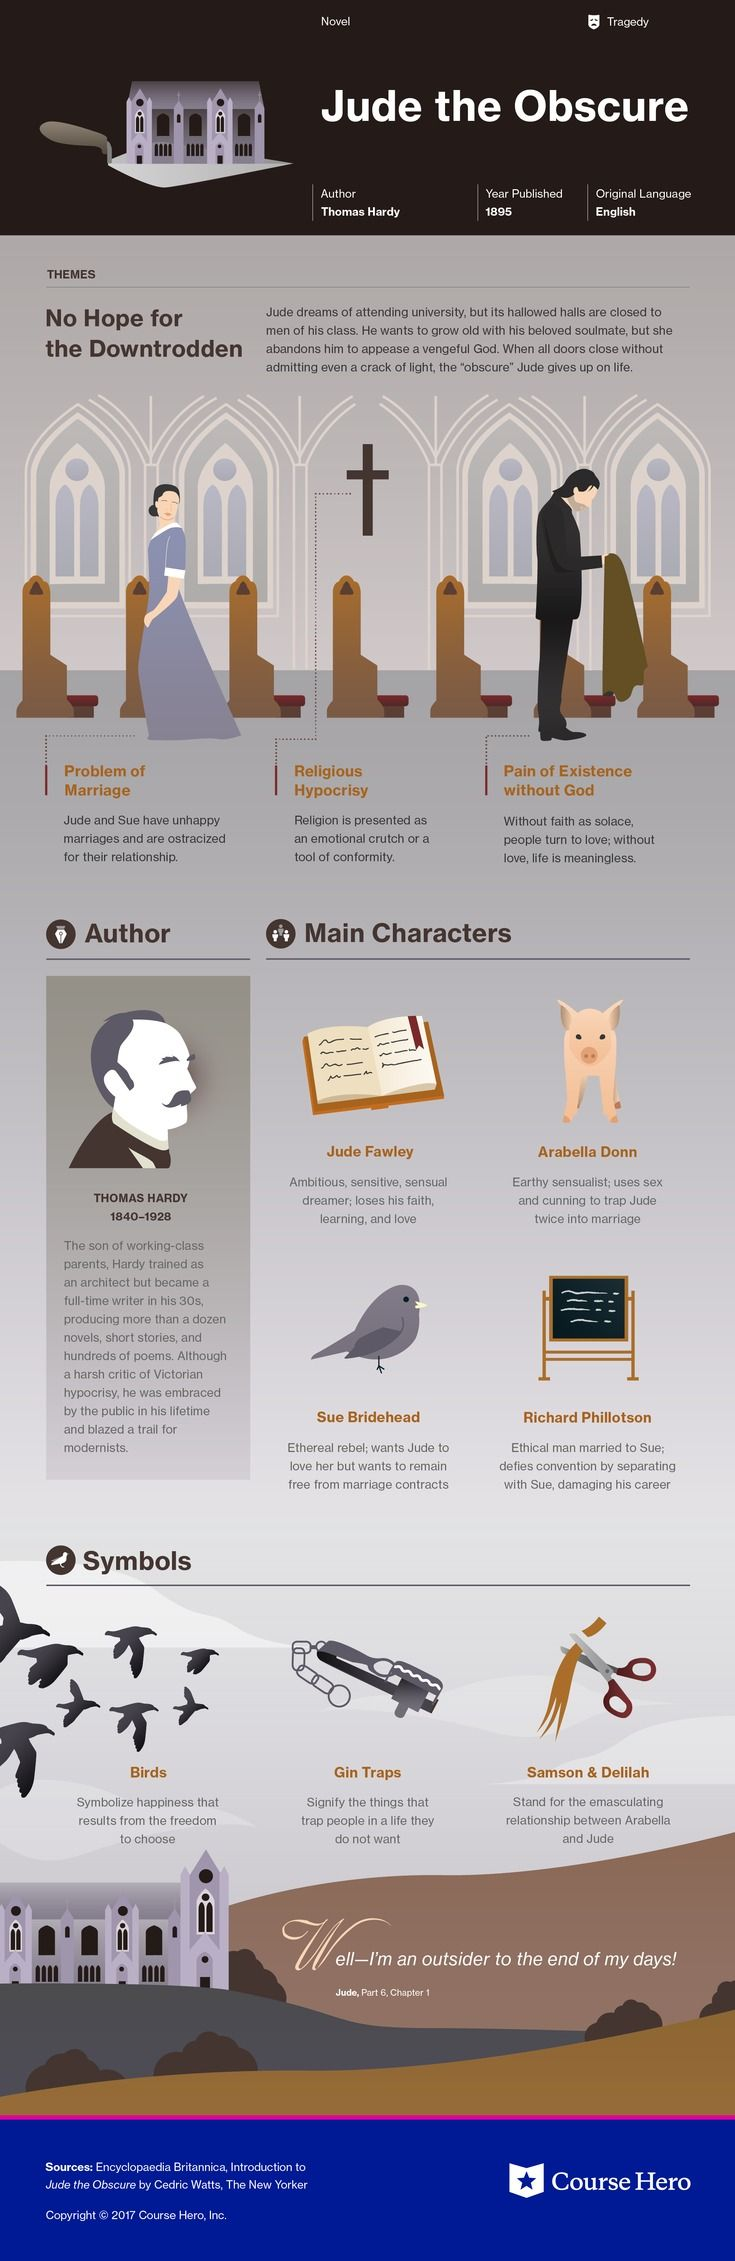 This @CourseHero infographic on Jude the Obscure is both visually stunning and informative!